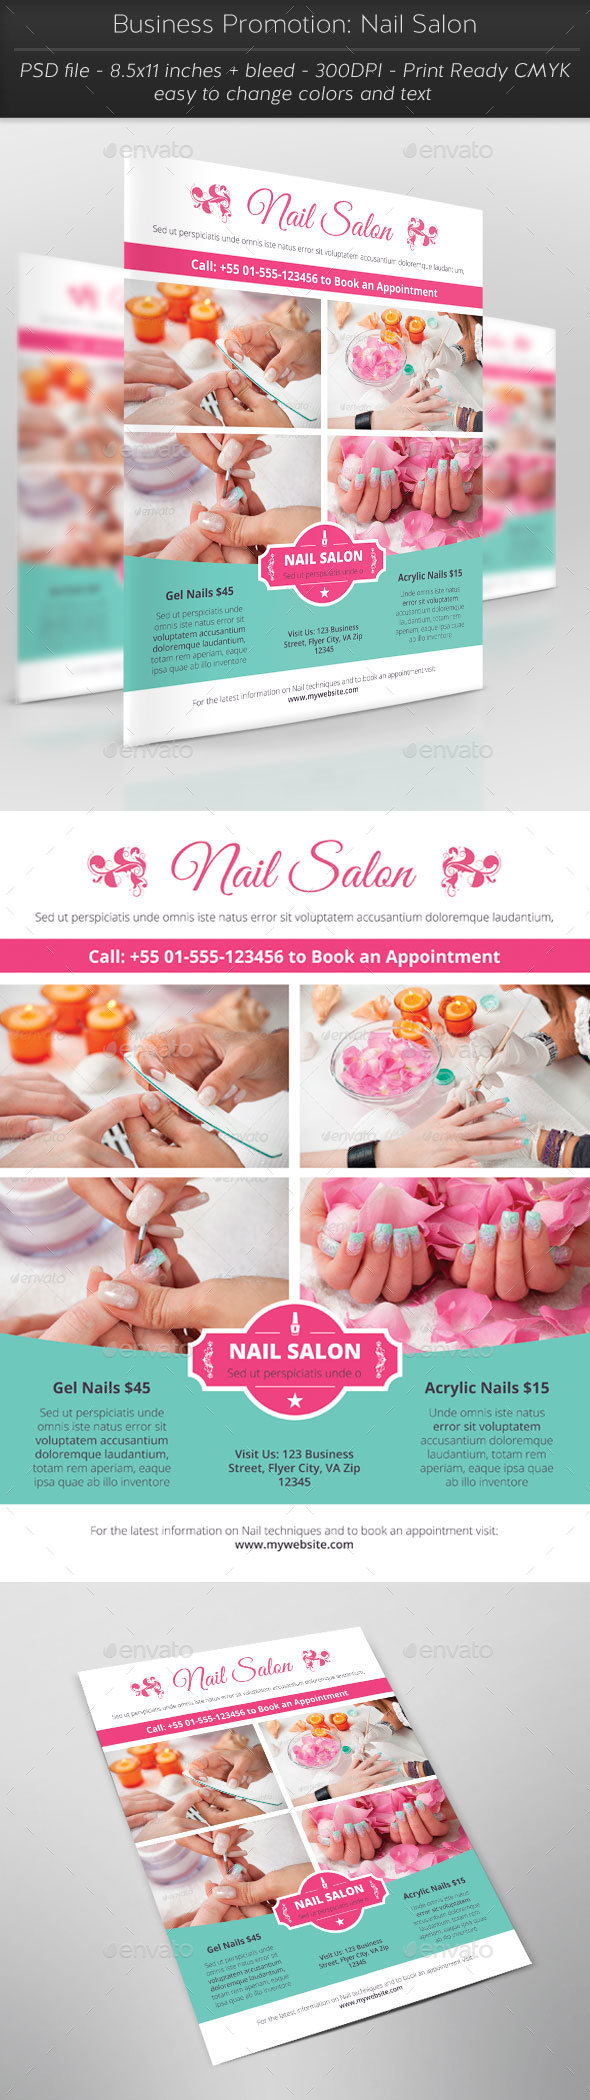 Business Promotion: Nail Salon - Commerce Flyers